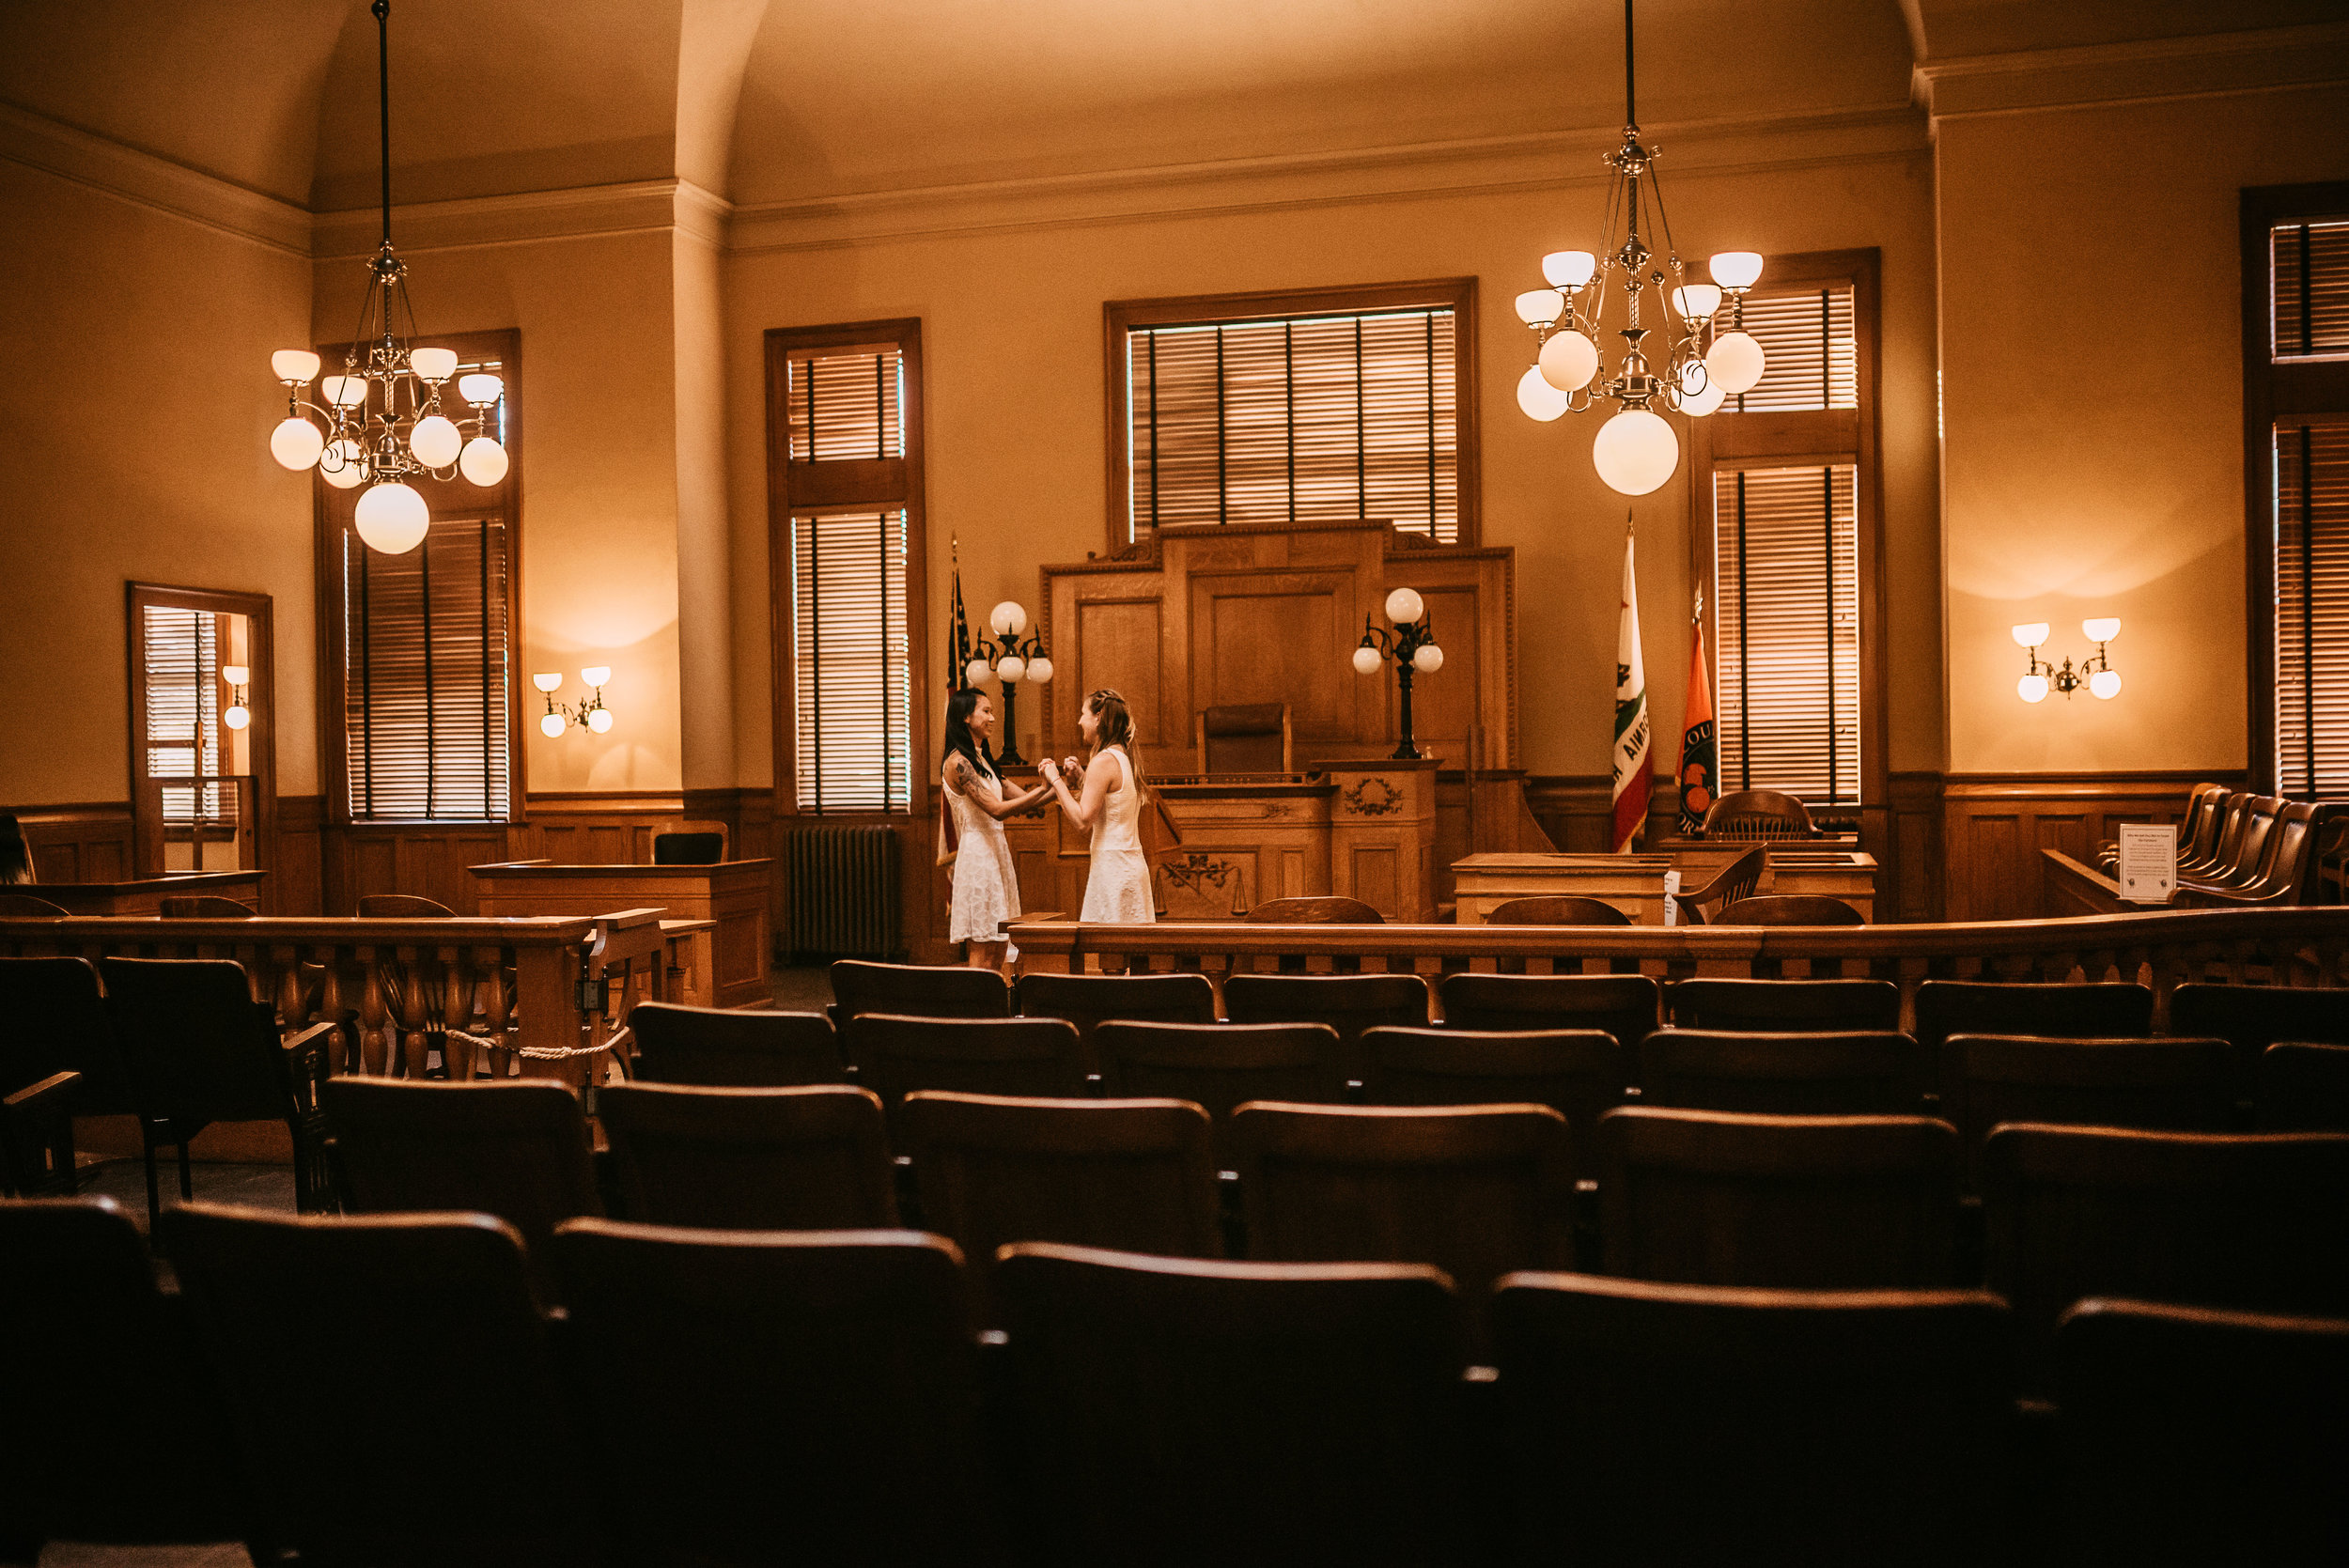 debbie-kelly-santa-ana-old-orange-county-courthouse-elopement-wedding-1-16.jpg